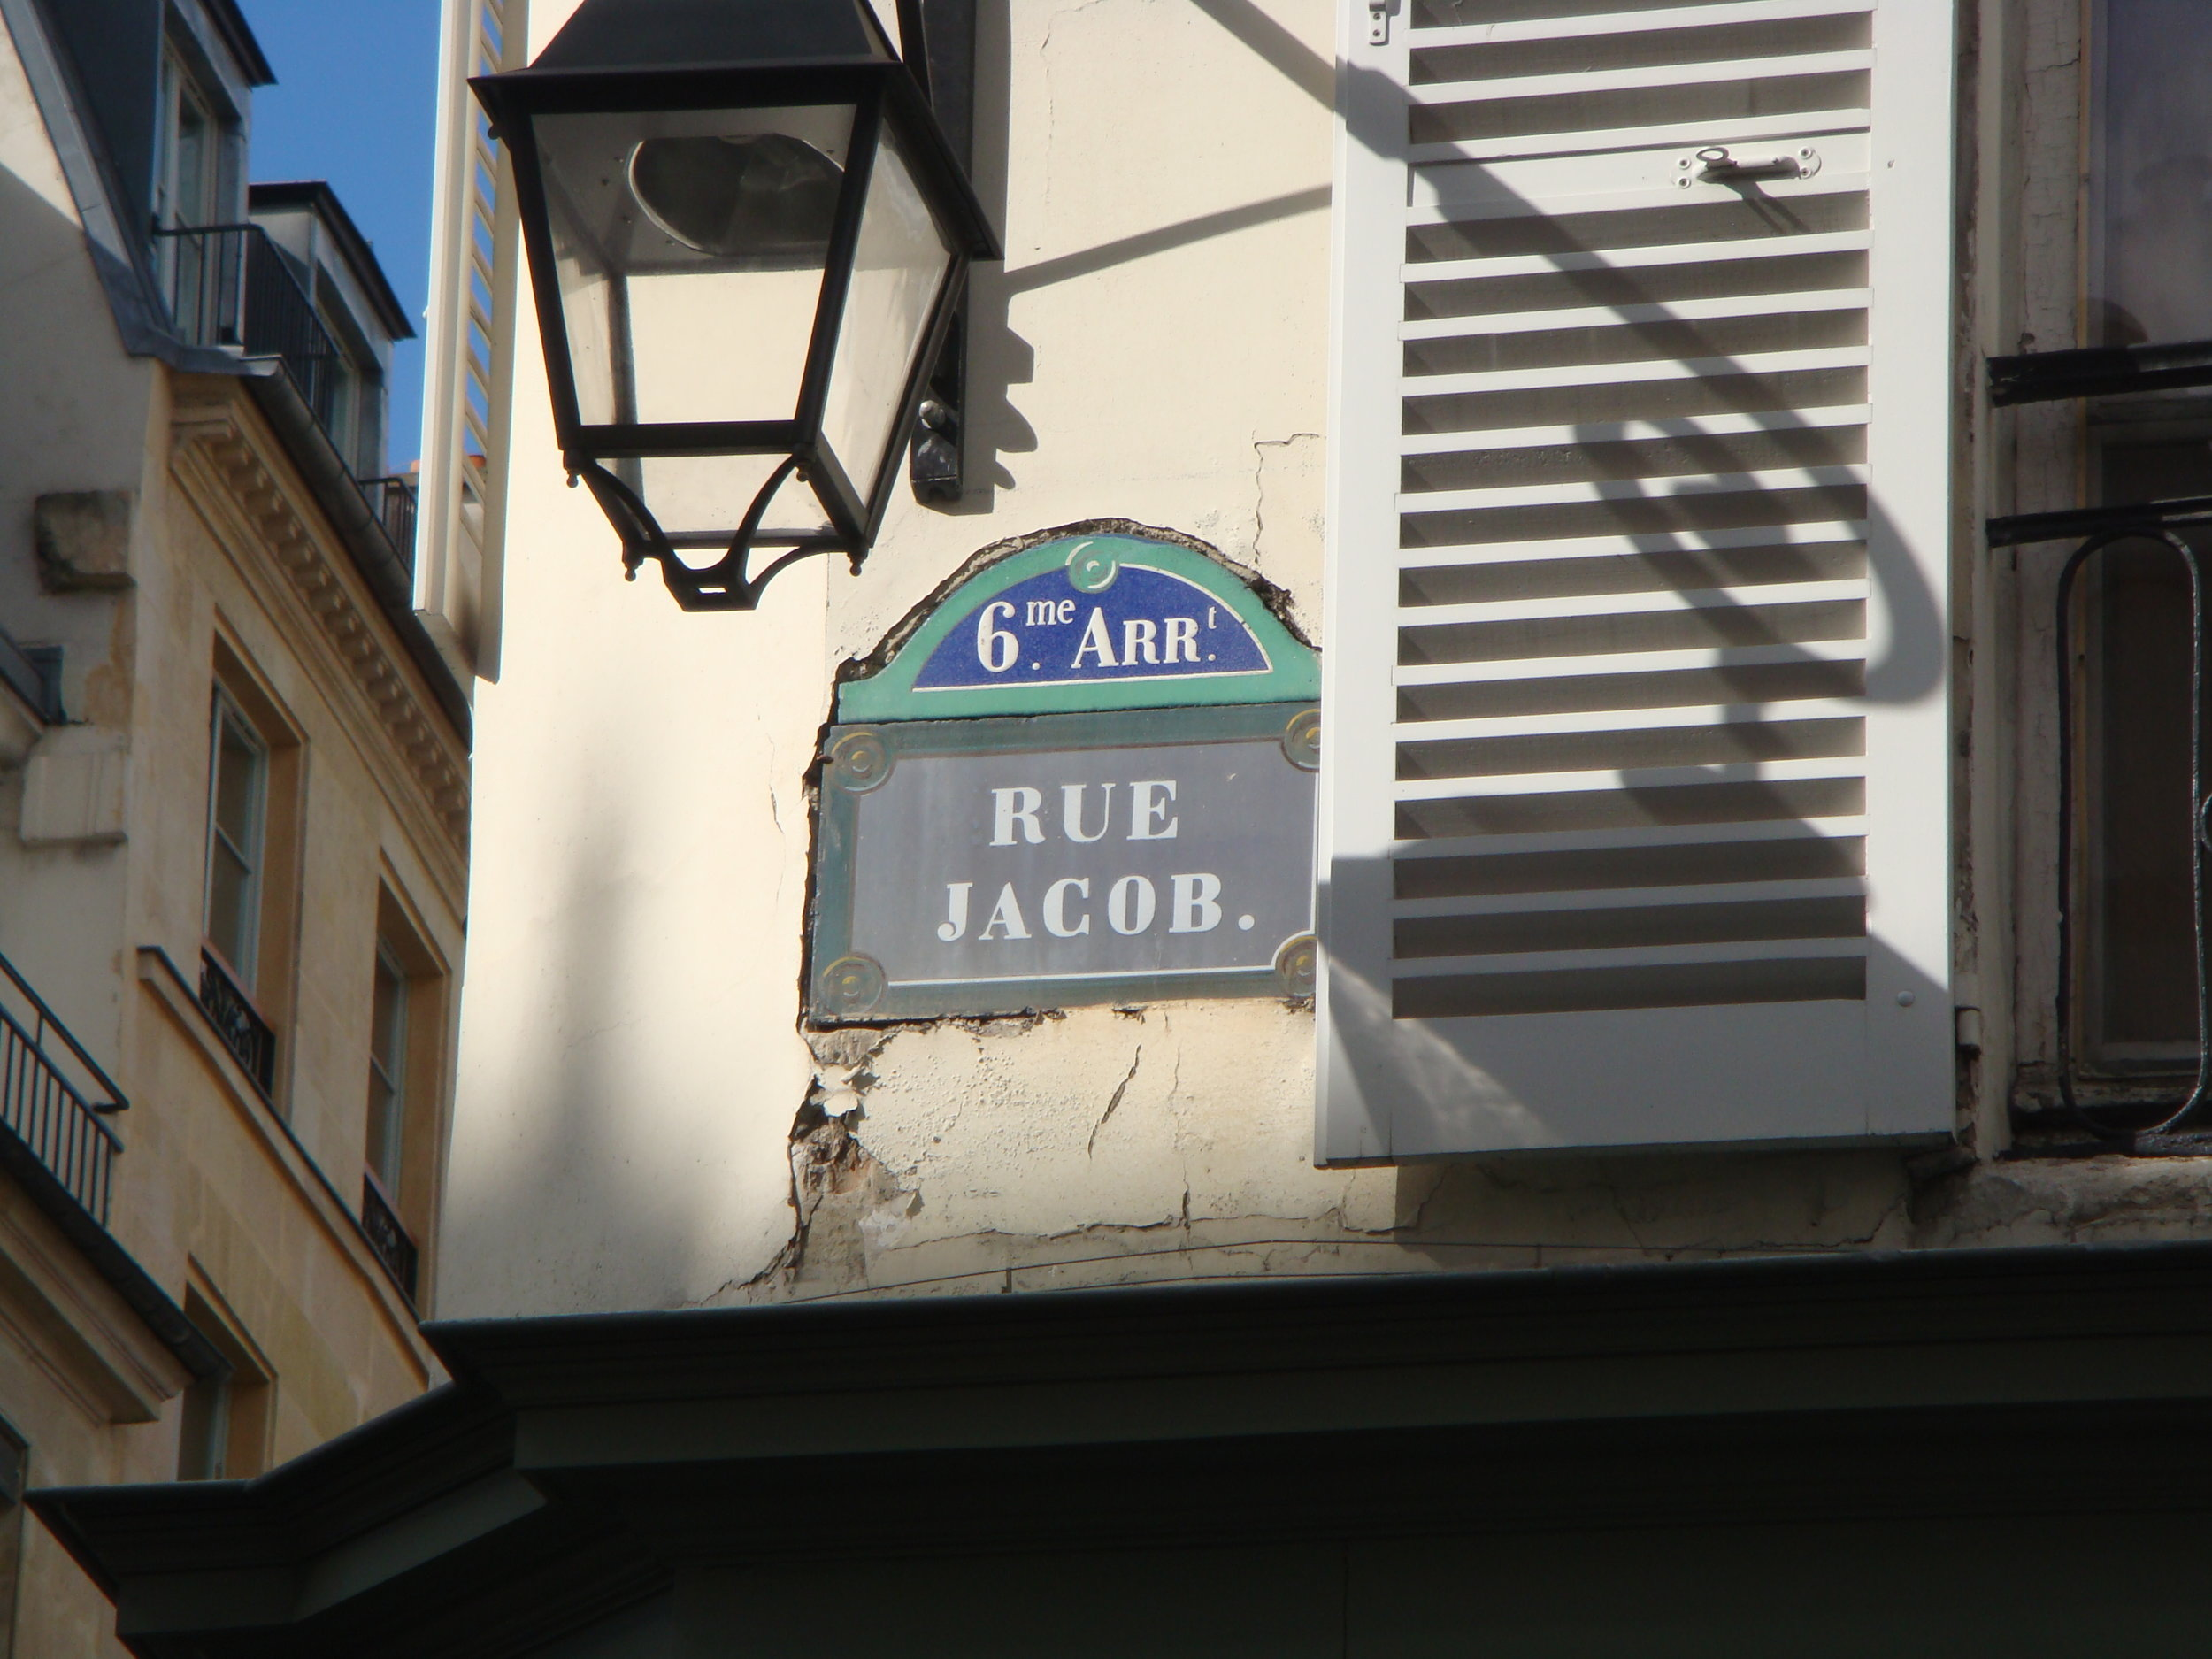 A view of our namesake, Rue Jacob